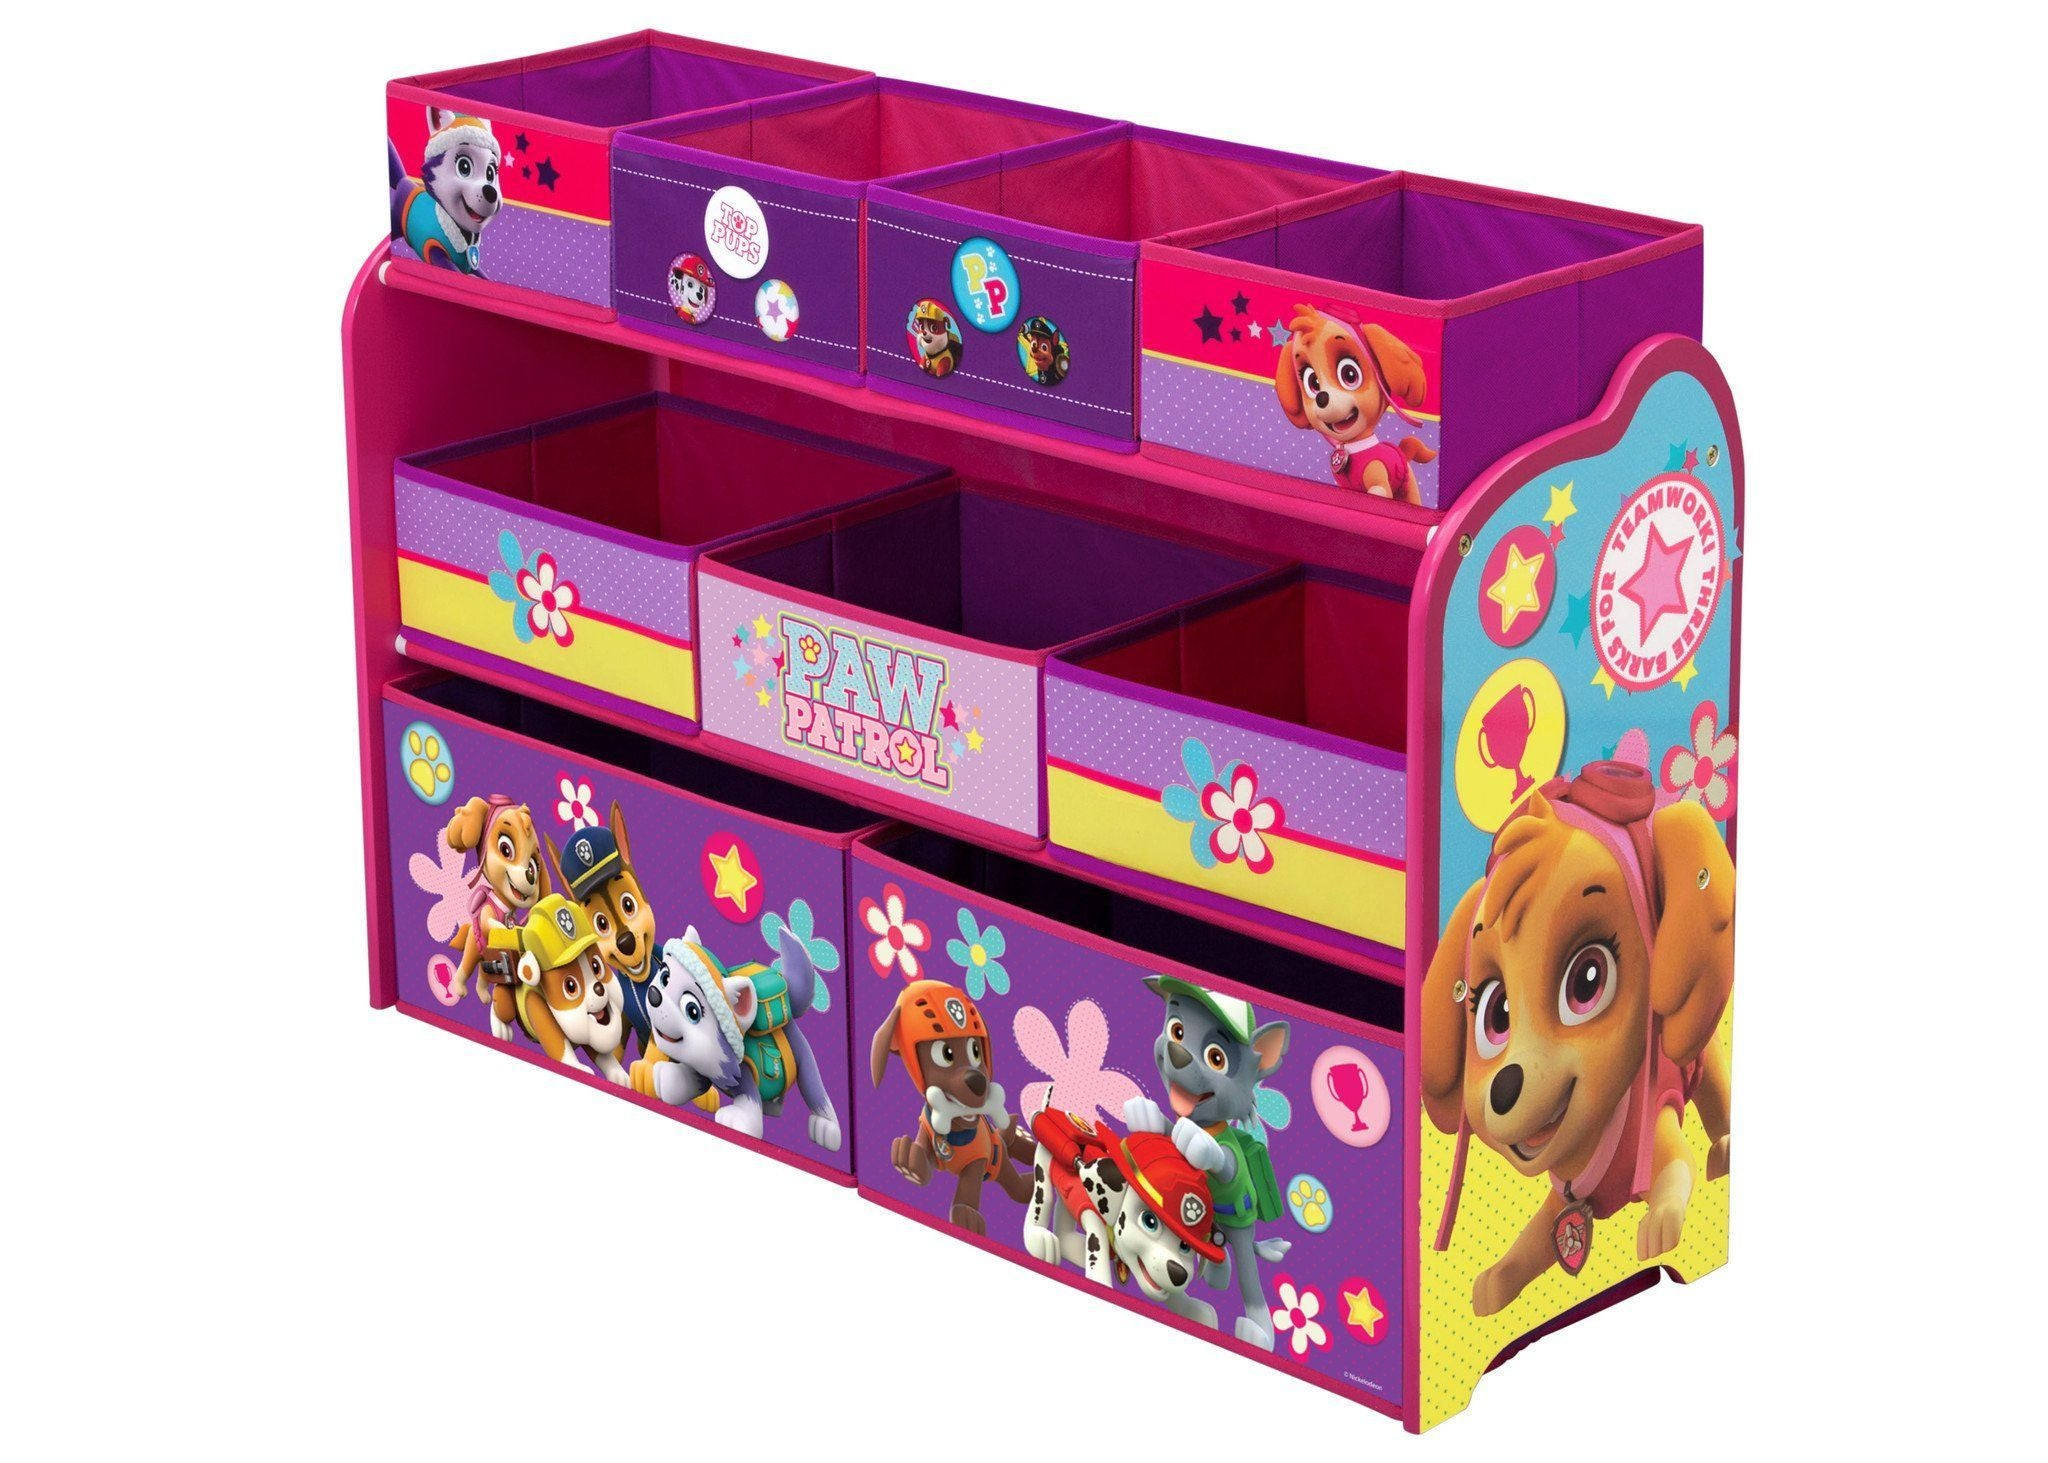 Paw Patrol Kids Toy Organizer Bin Children S Storage Box: PAW Patrol, Skye & Everest Deluxe Multi-Bin Toy Organizer